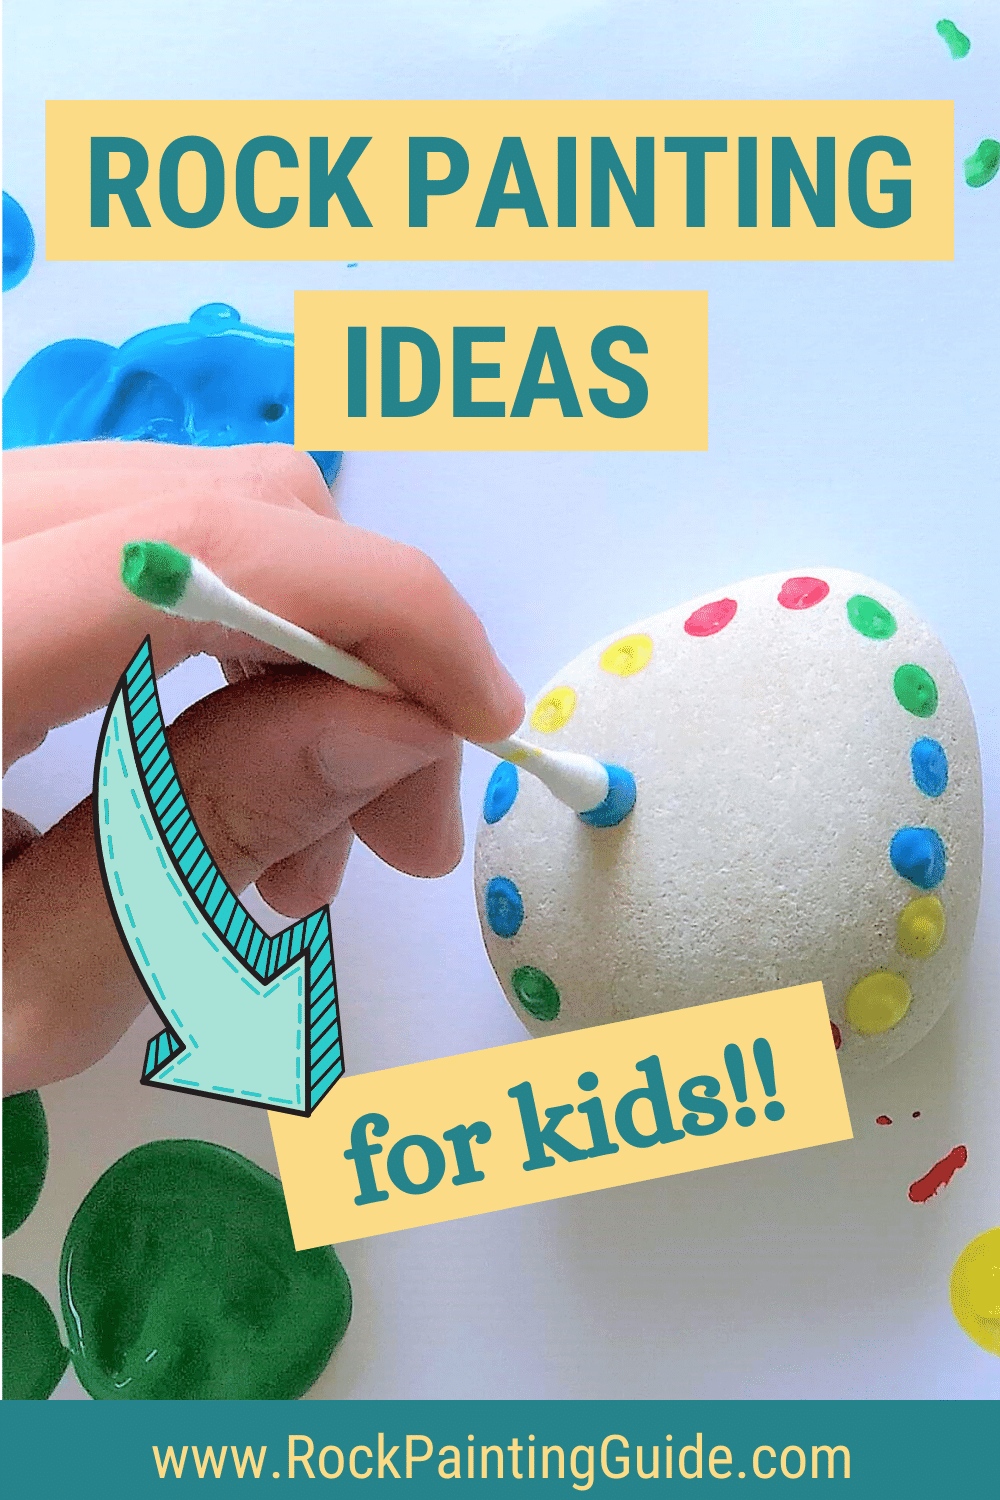 Rock Painting Ideas for Kids!!